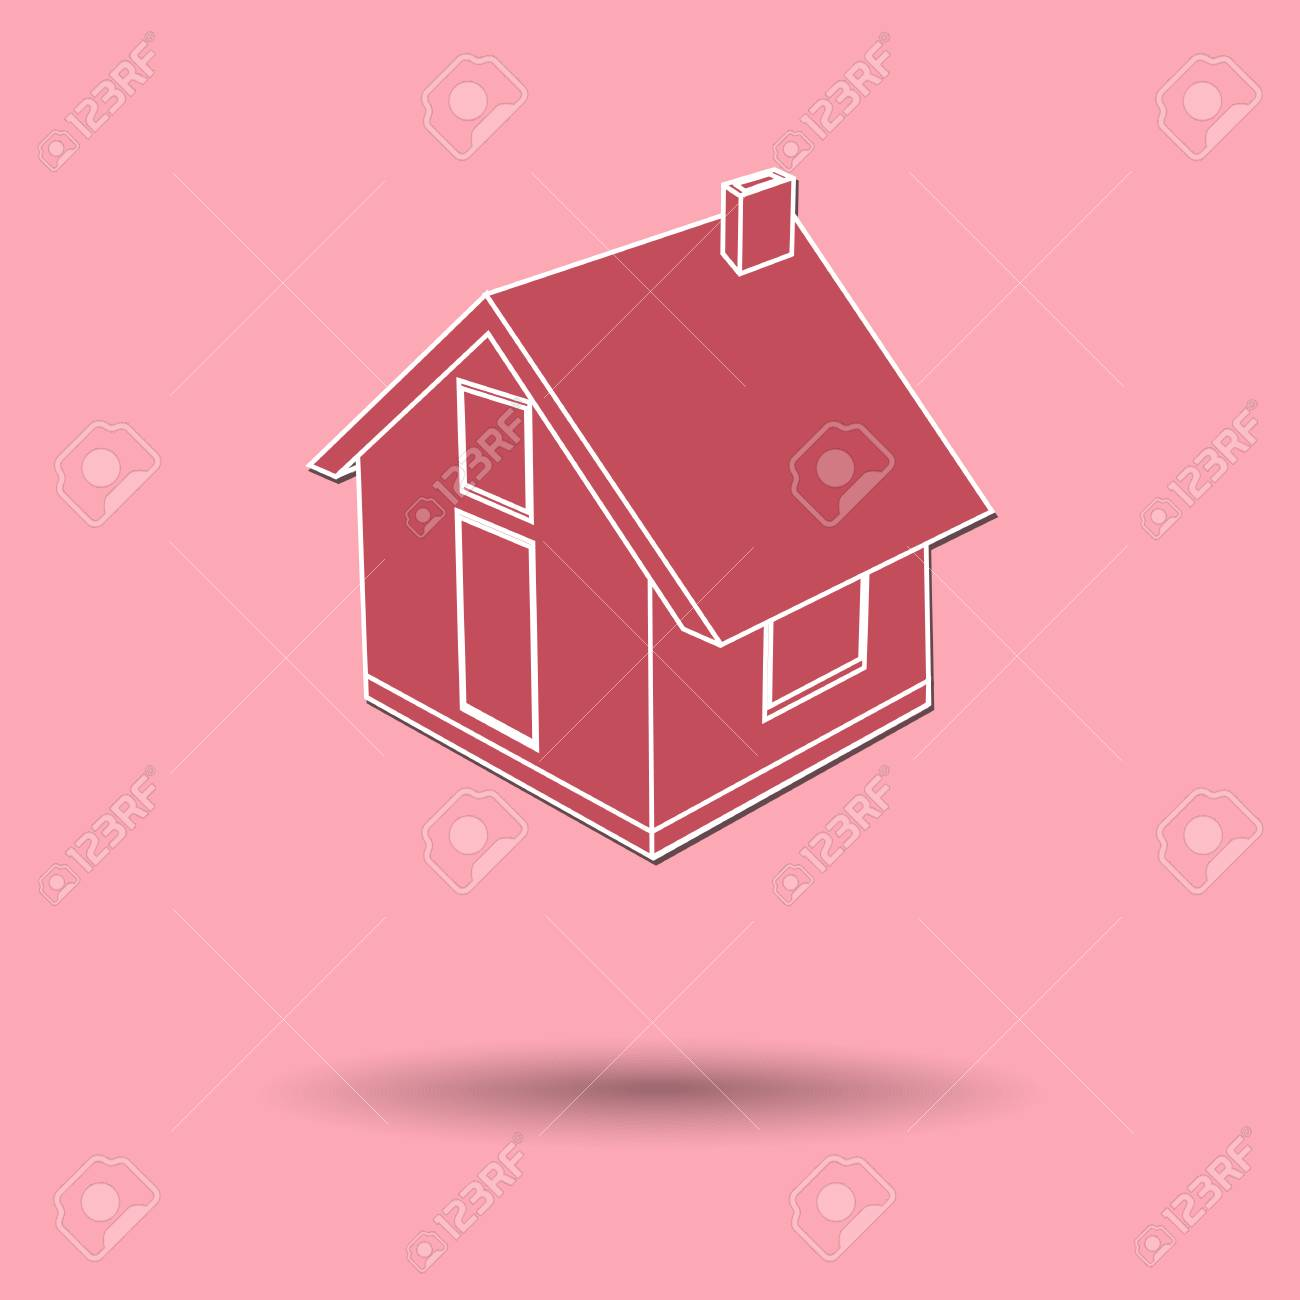 Vector Illustration Of House Color Background. Royalty Free Cliparts ...